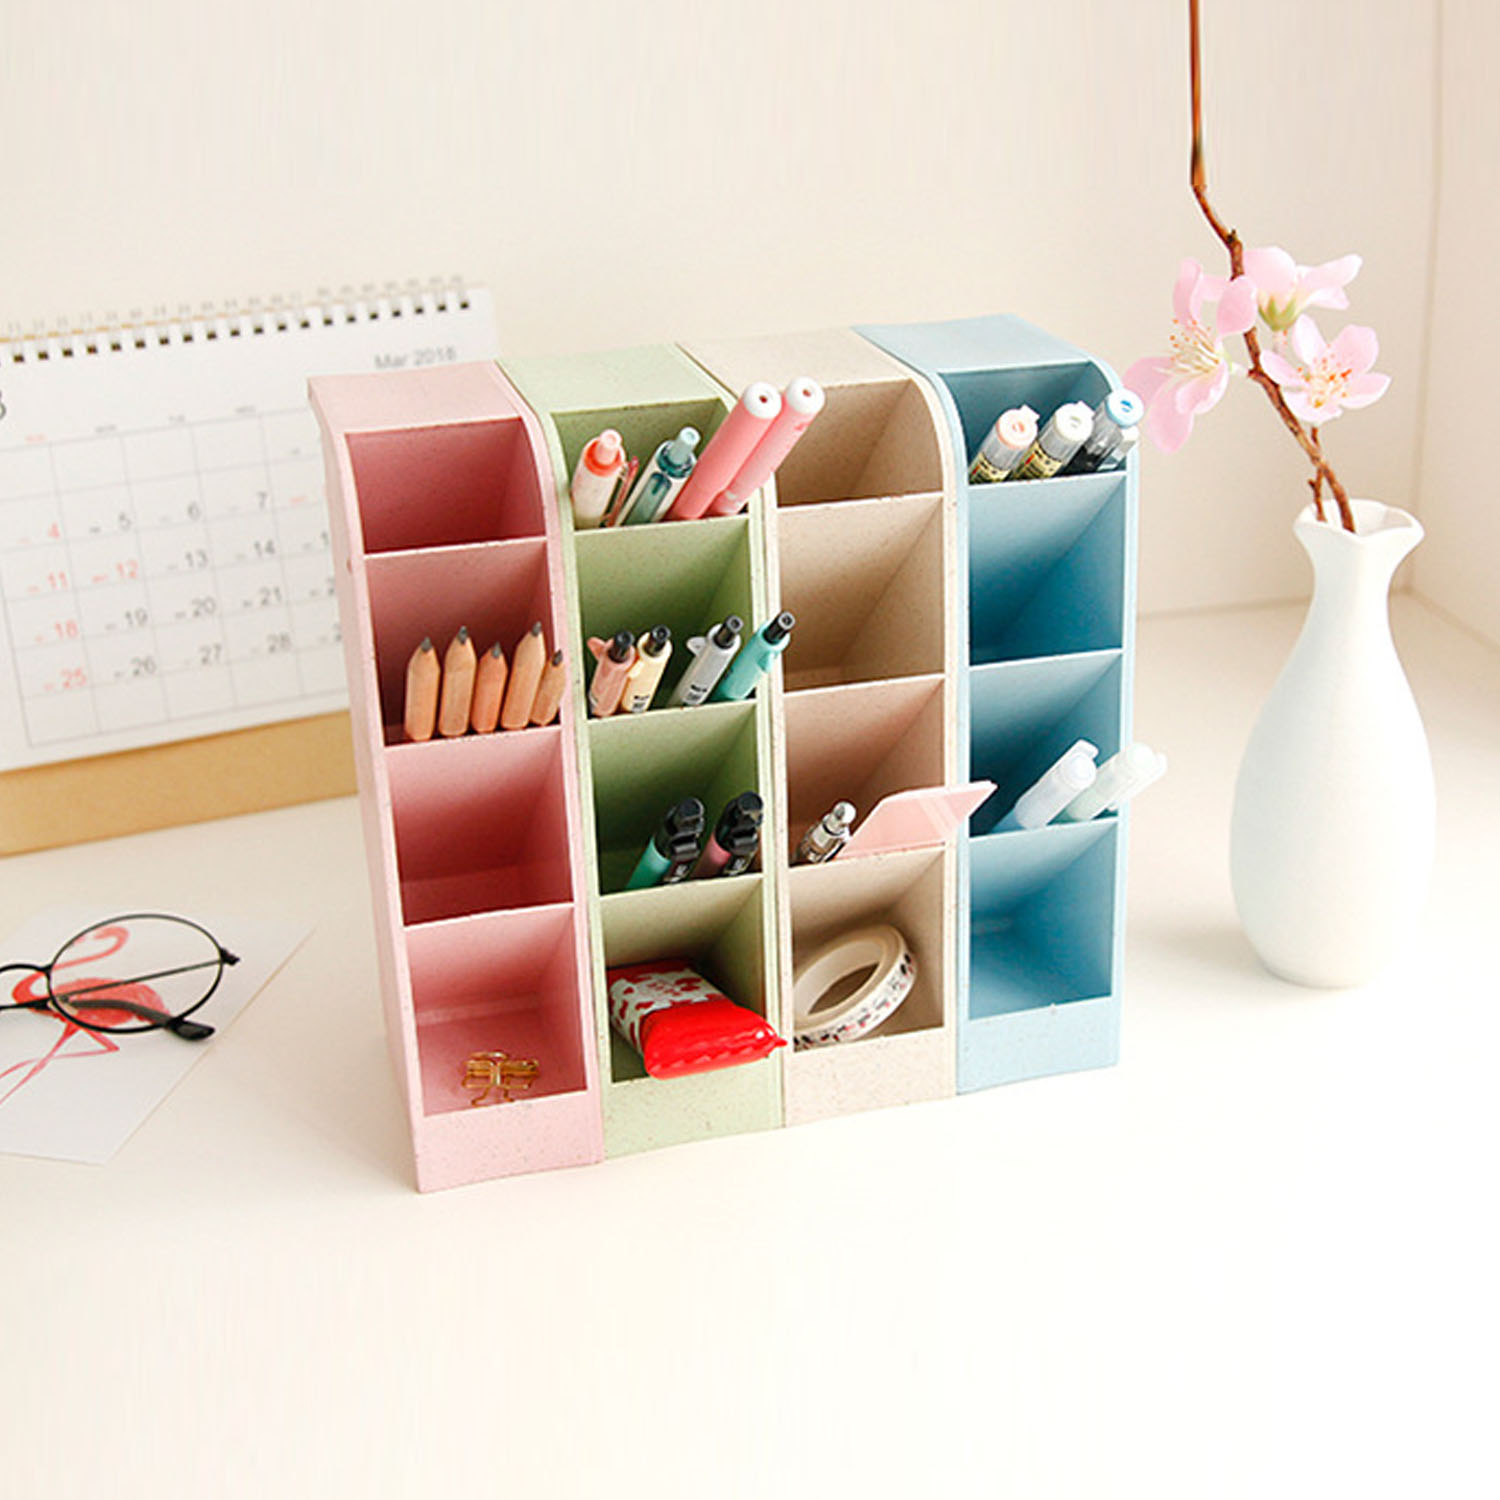 Multi-function 4 Grid Desktop Pen Holder Durable Desk Pencil Organizers Stationery Stand Box For Home Office Classroom Keep Tidy